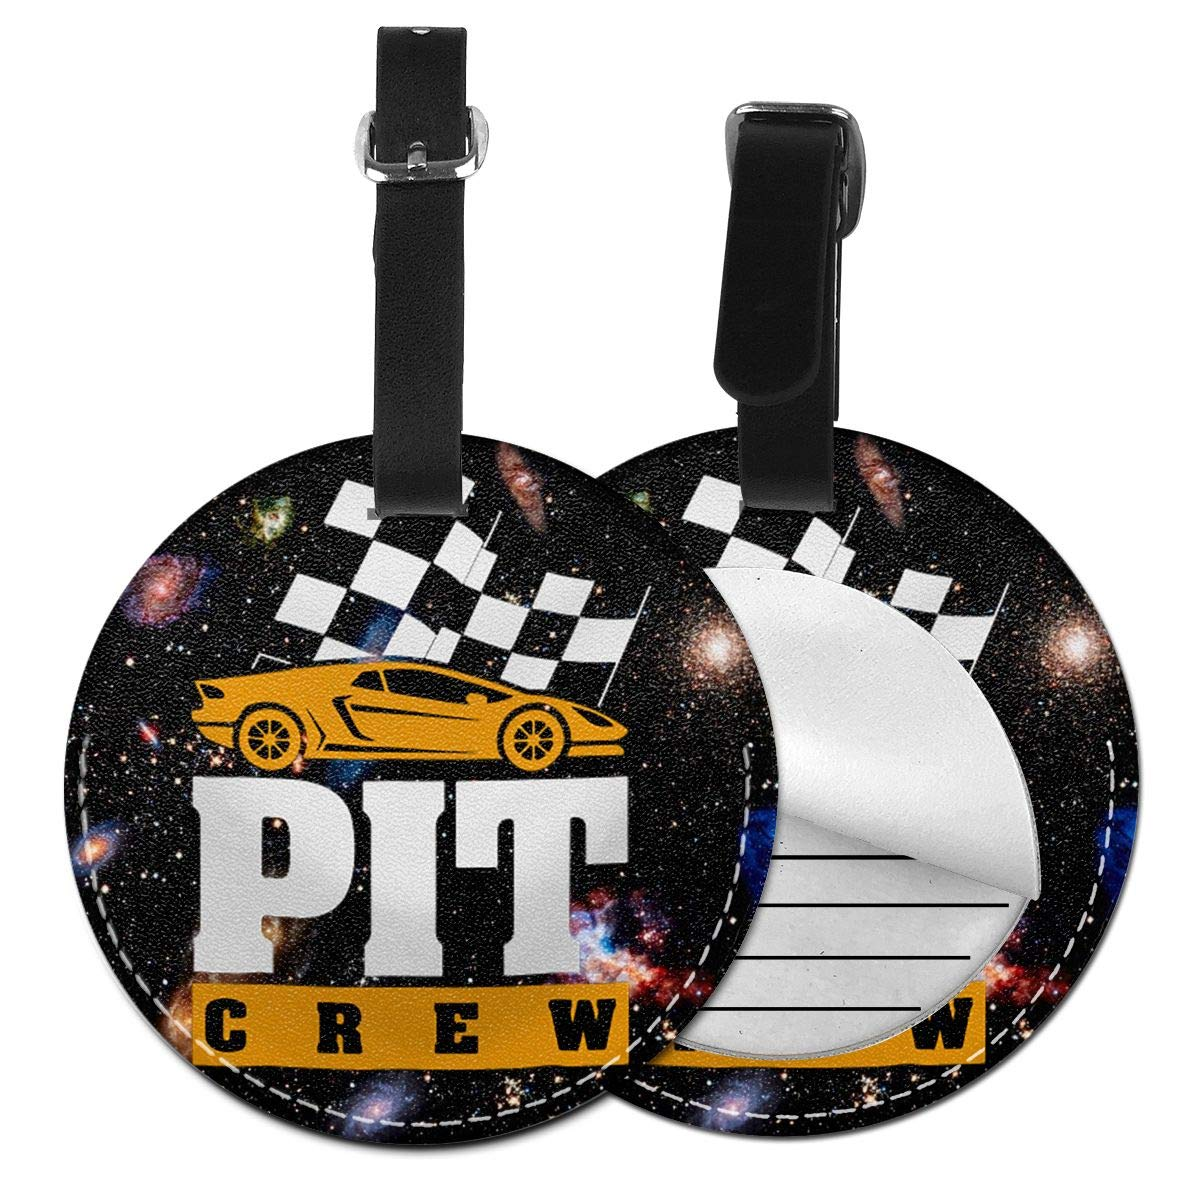 Free-2 Pit Crew Checkered Flag Cool Car Racing Luggage Tag 3D Print Leather Travel Bag ID Card